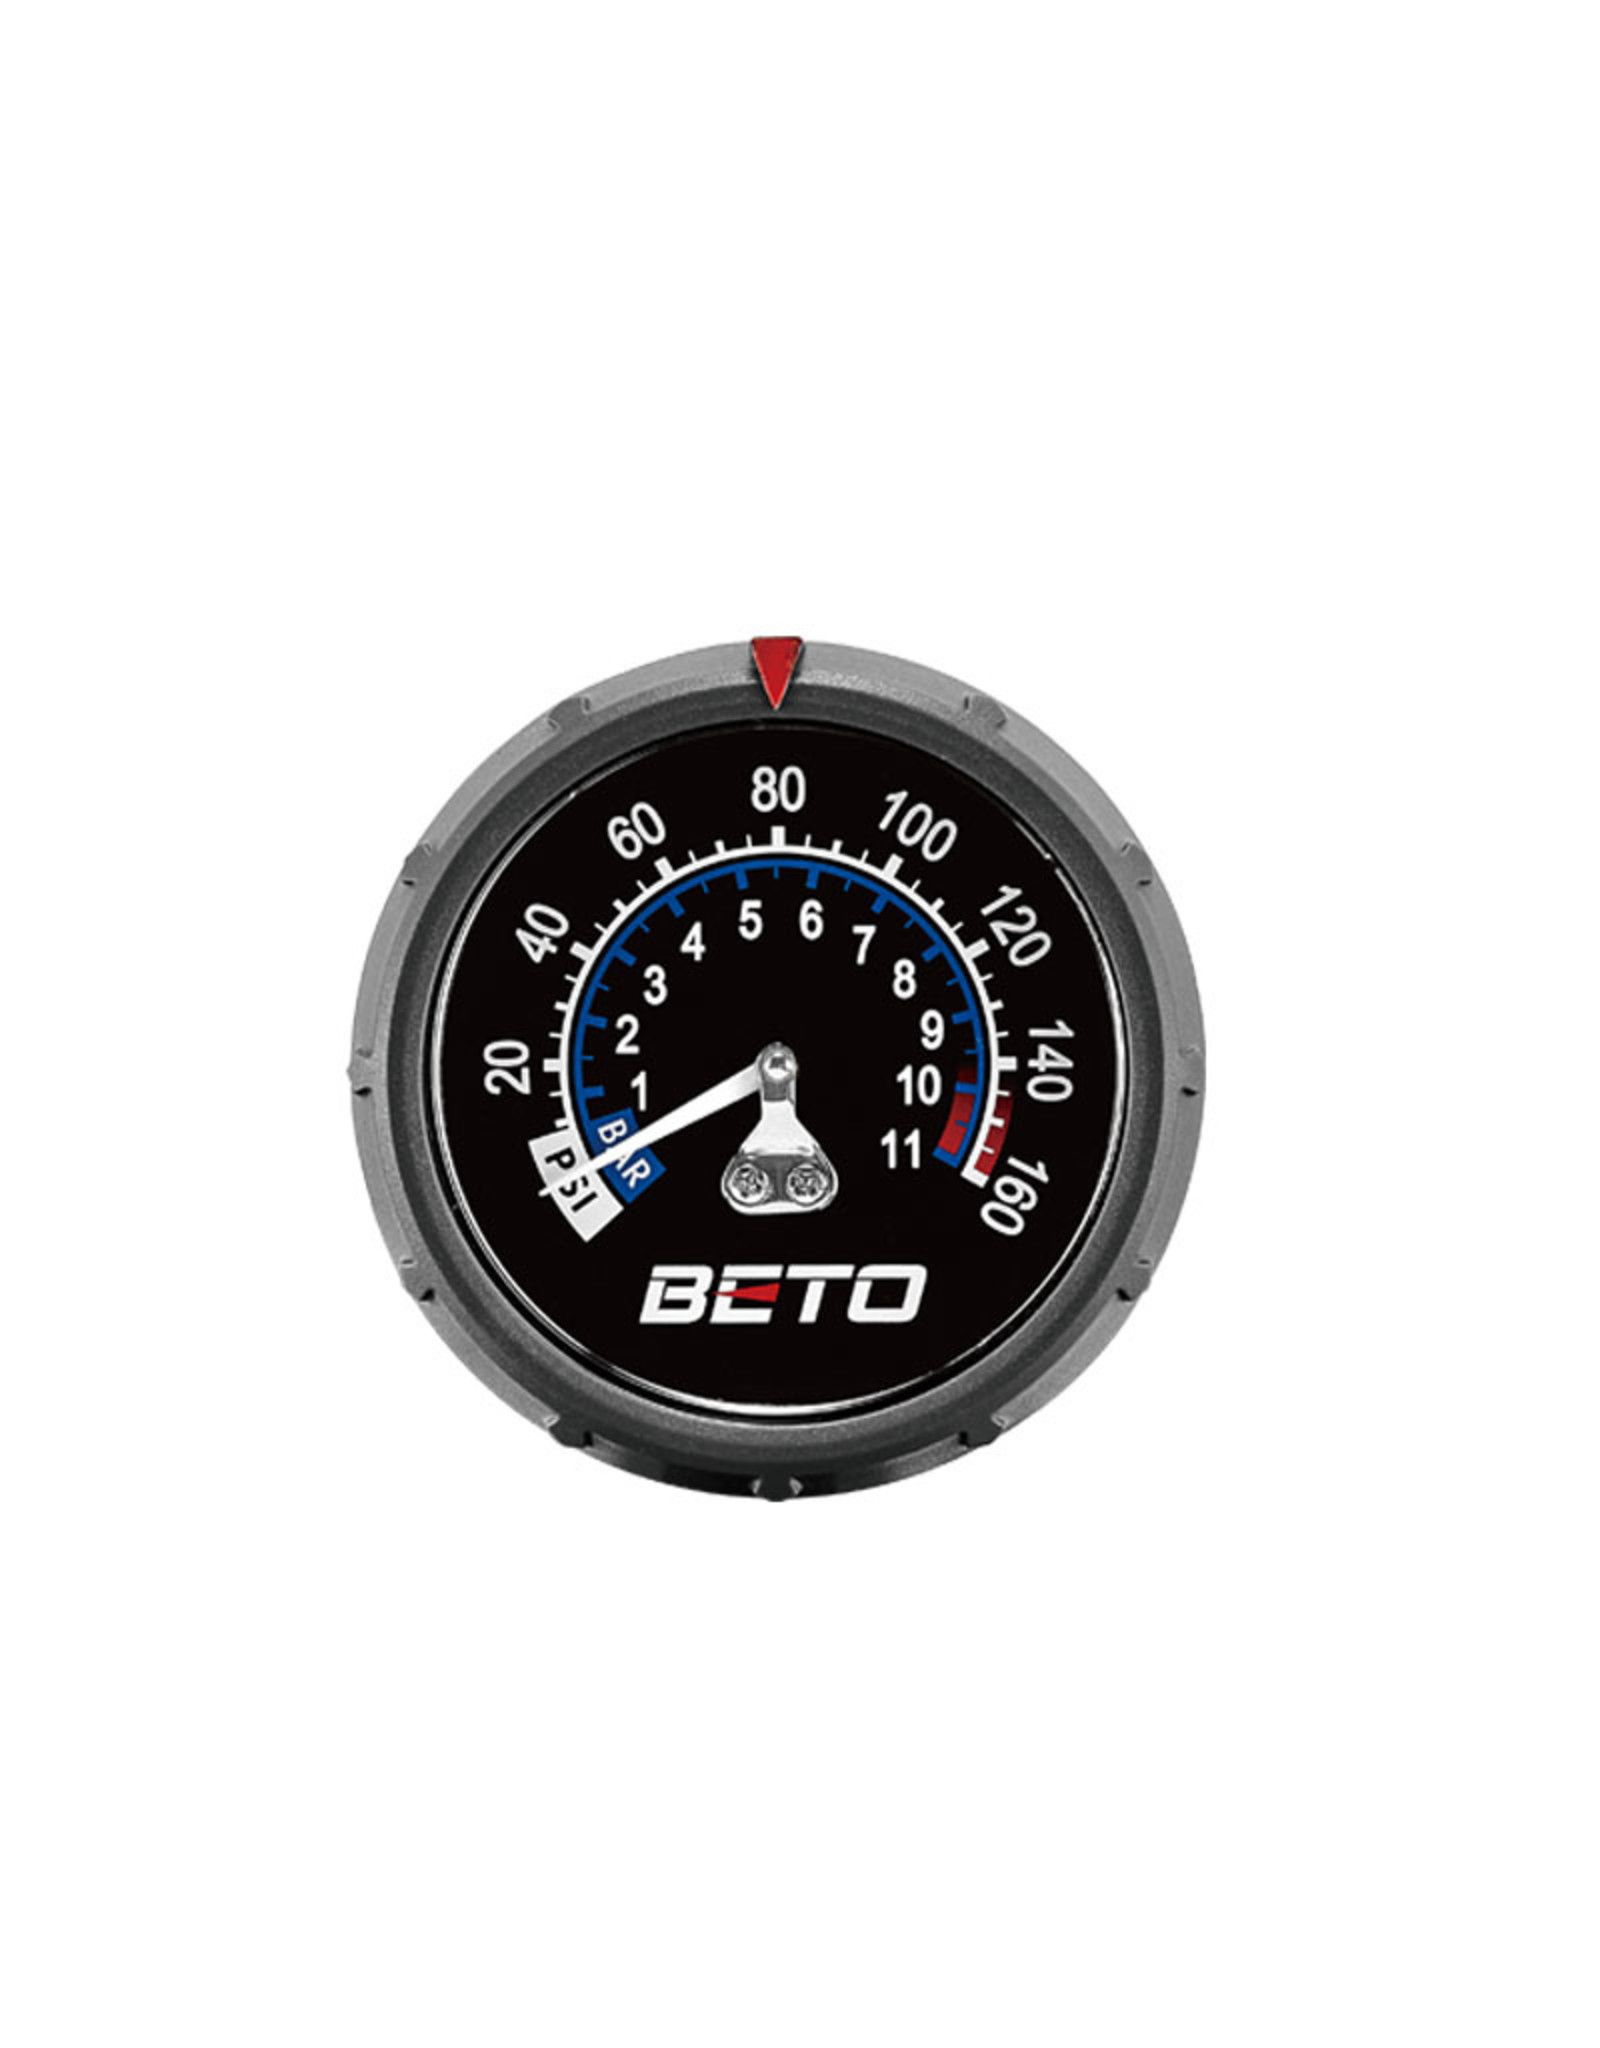 BETO STEEL FLOOR PUMP W/GAUGE CHROME